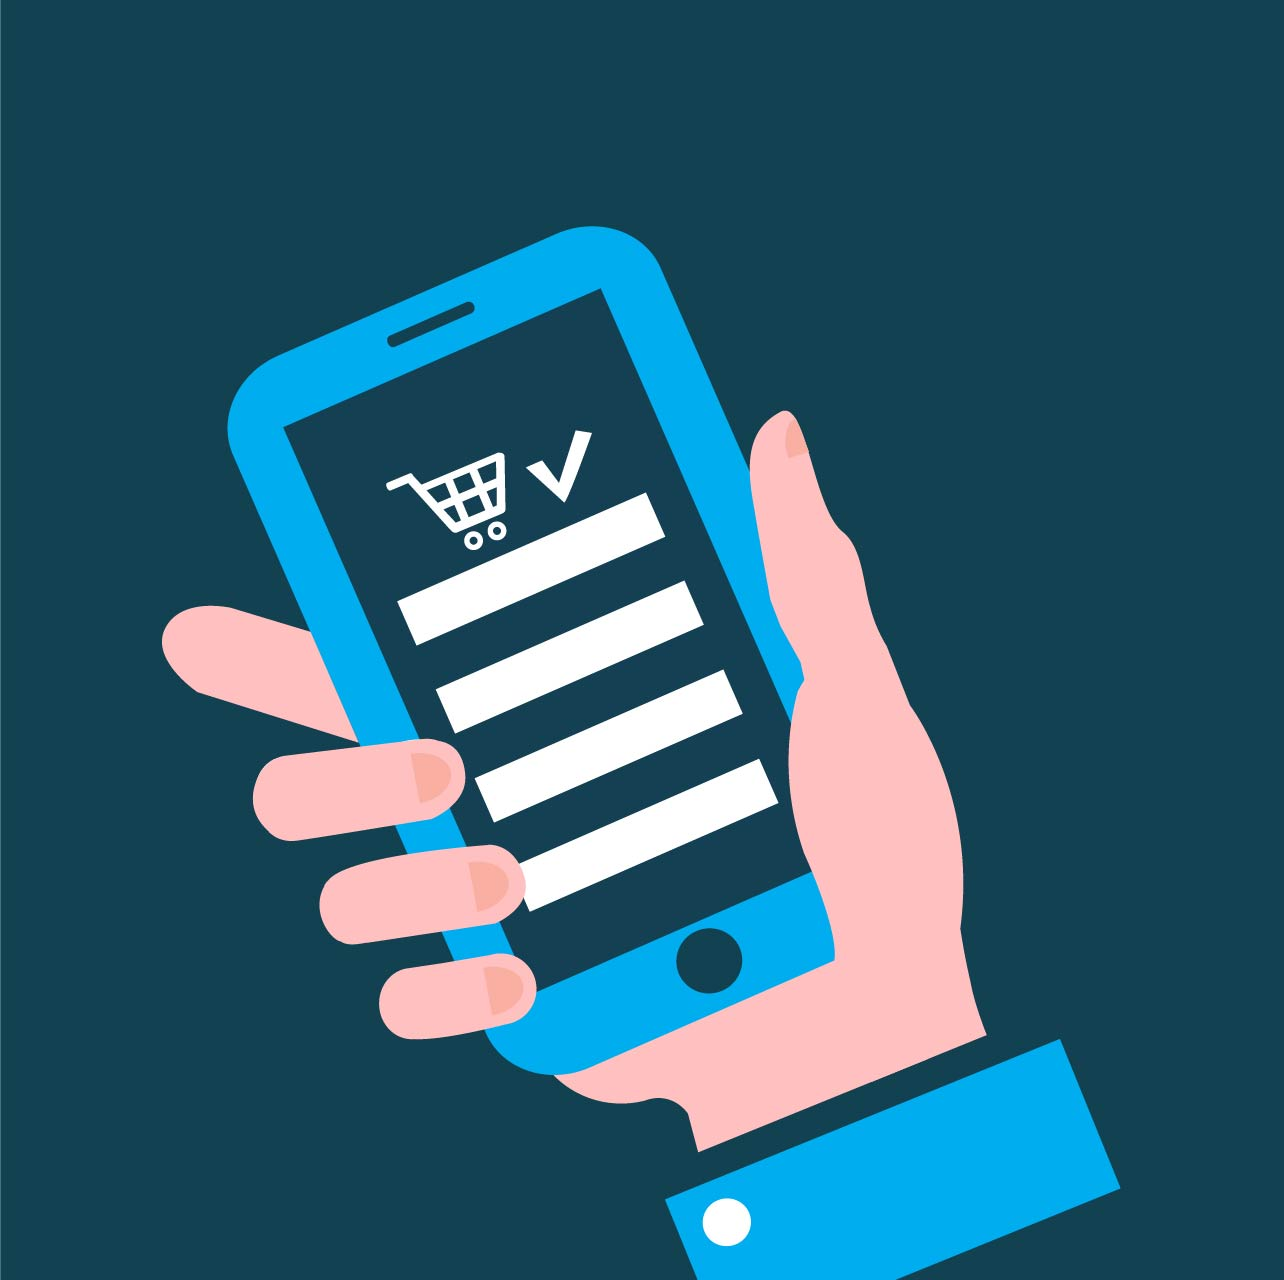 Mobile payment app